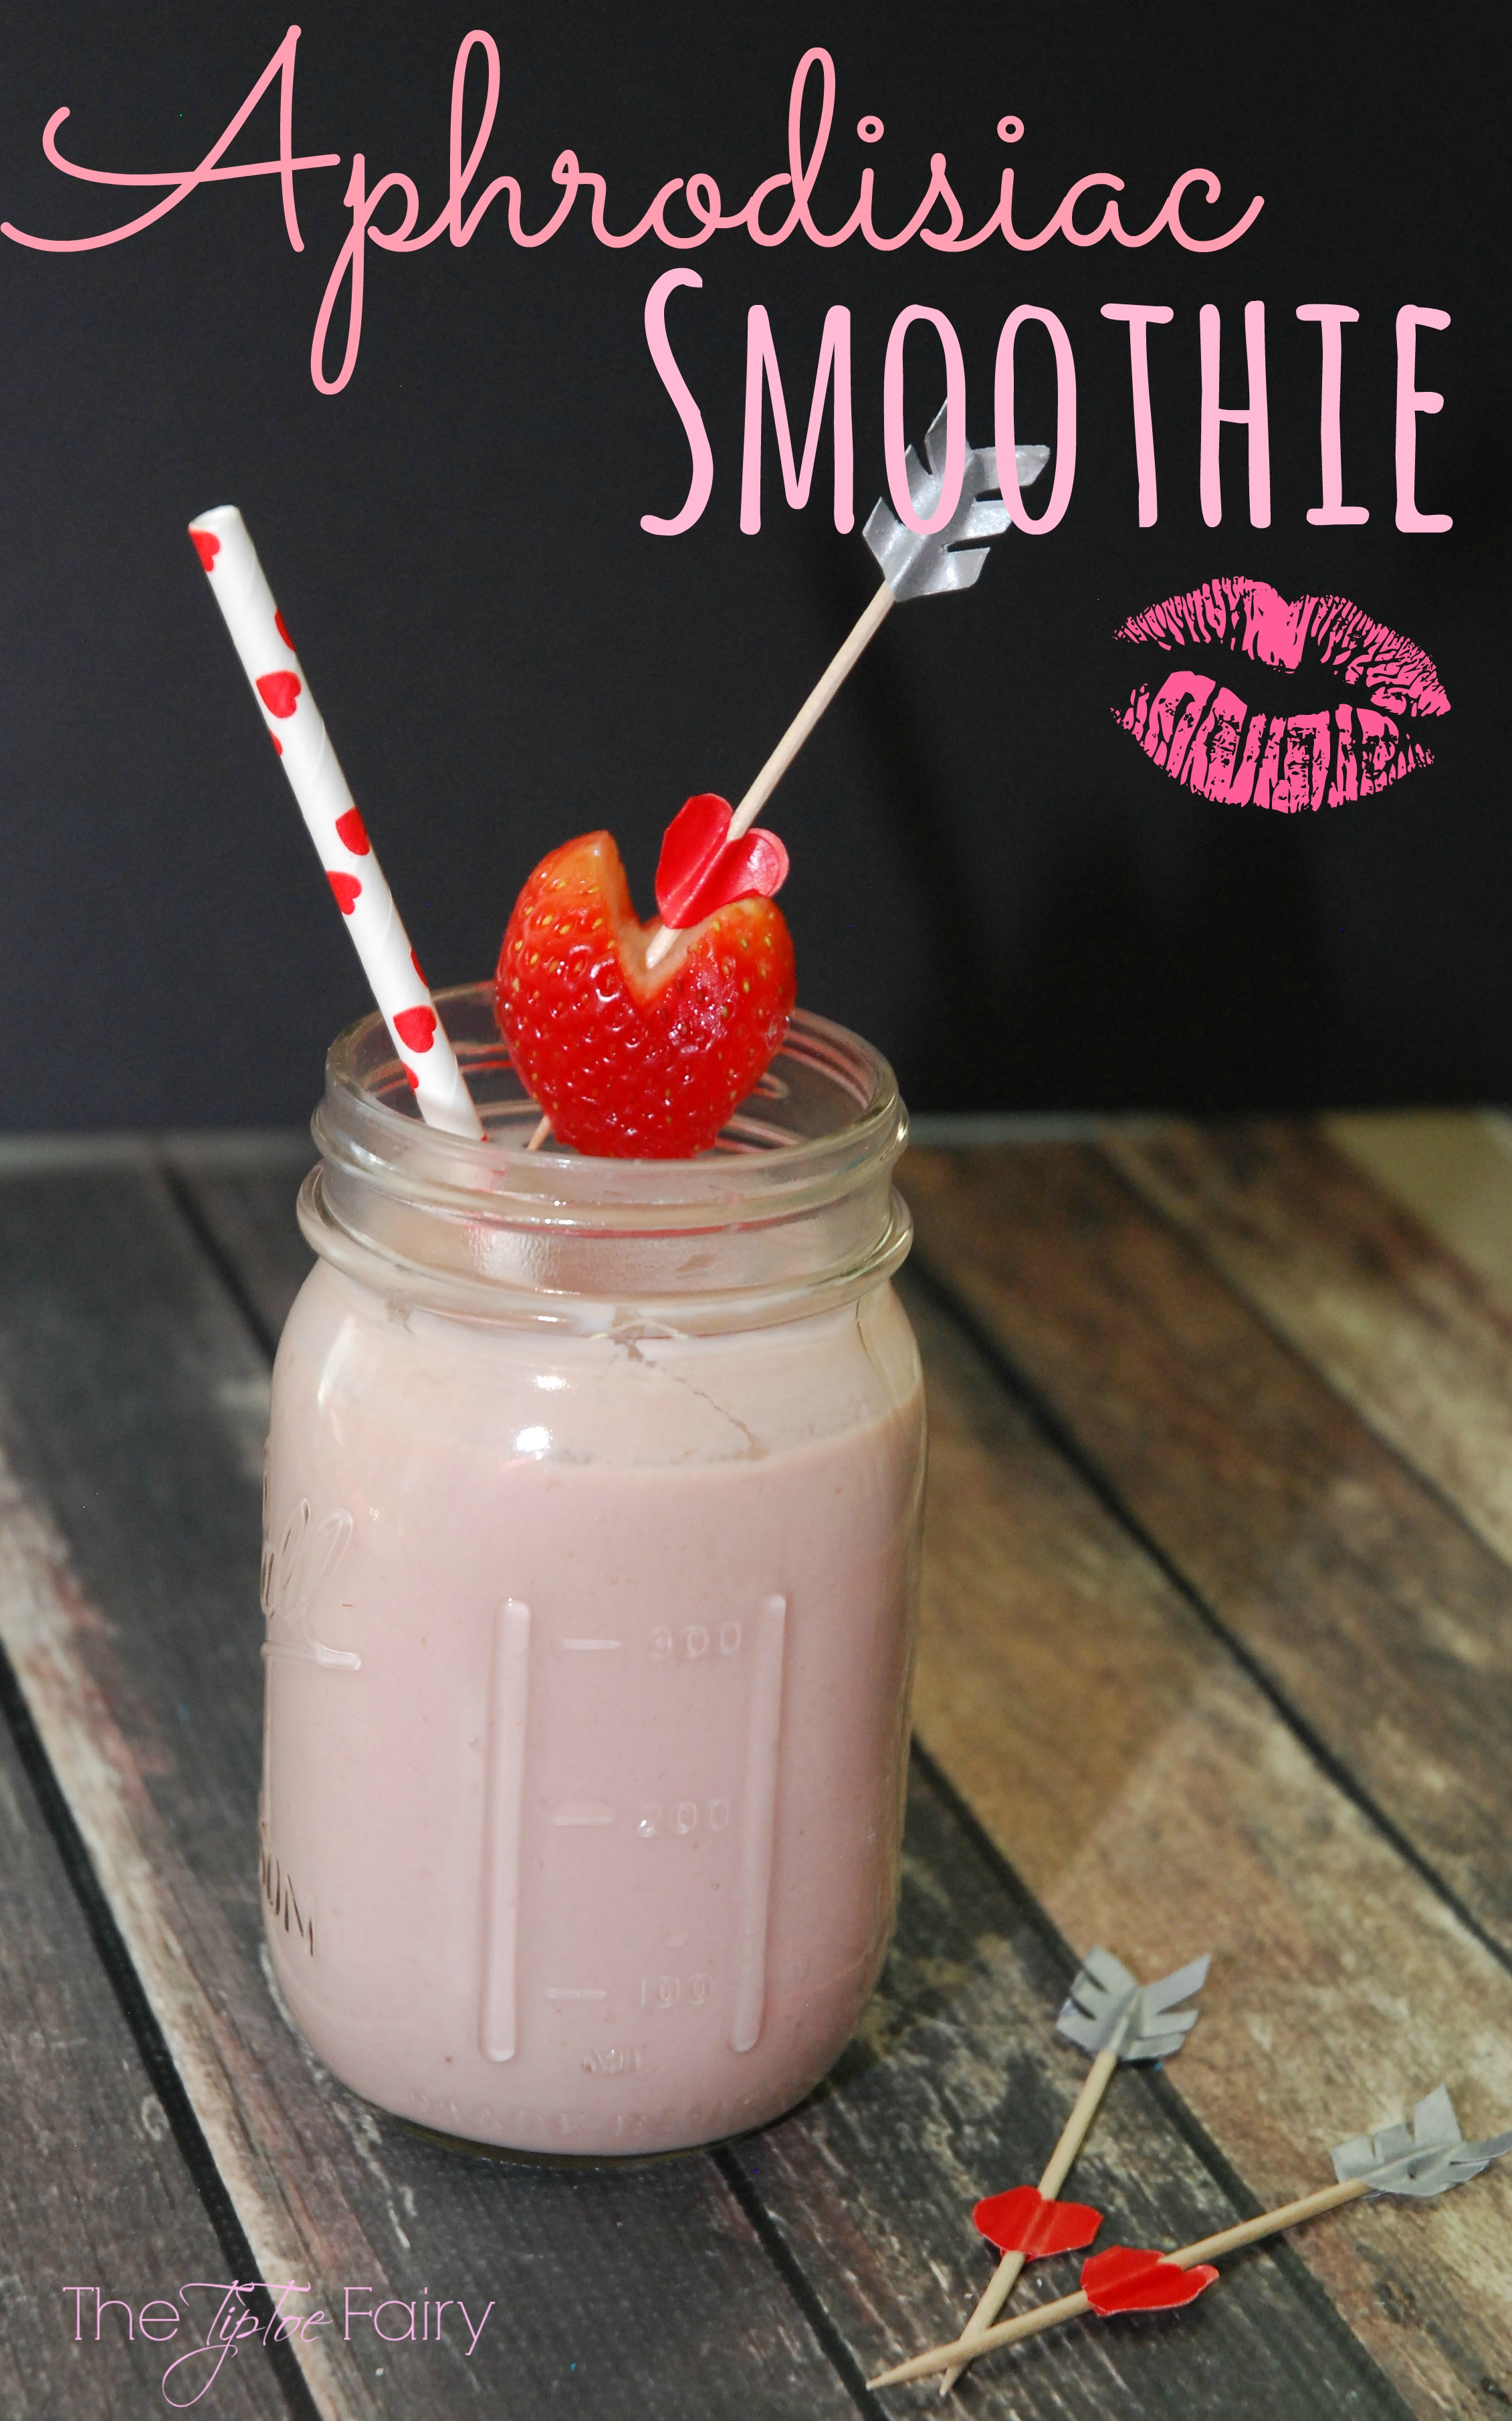 Love smoothie